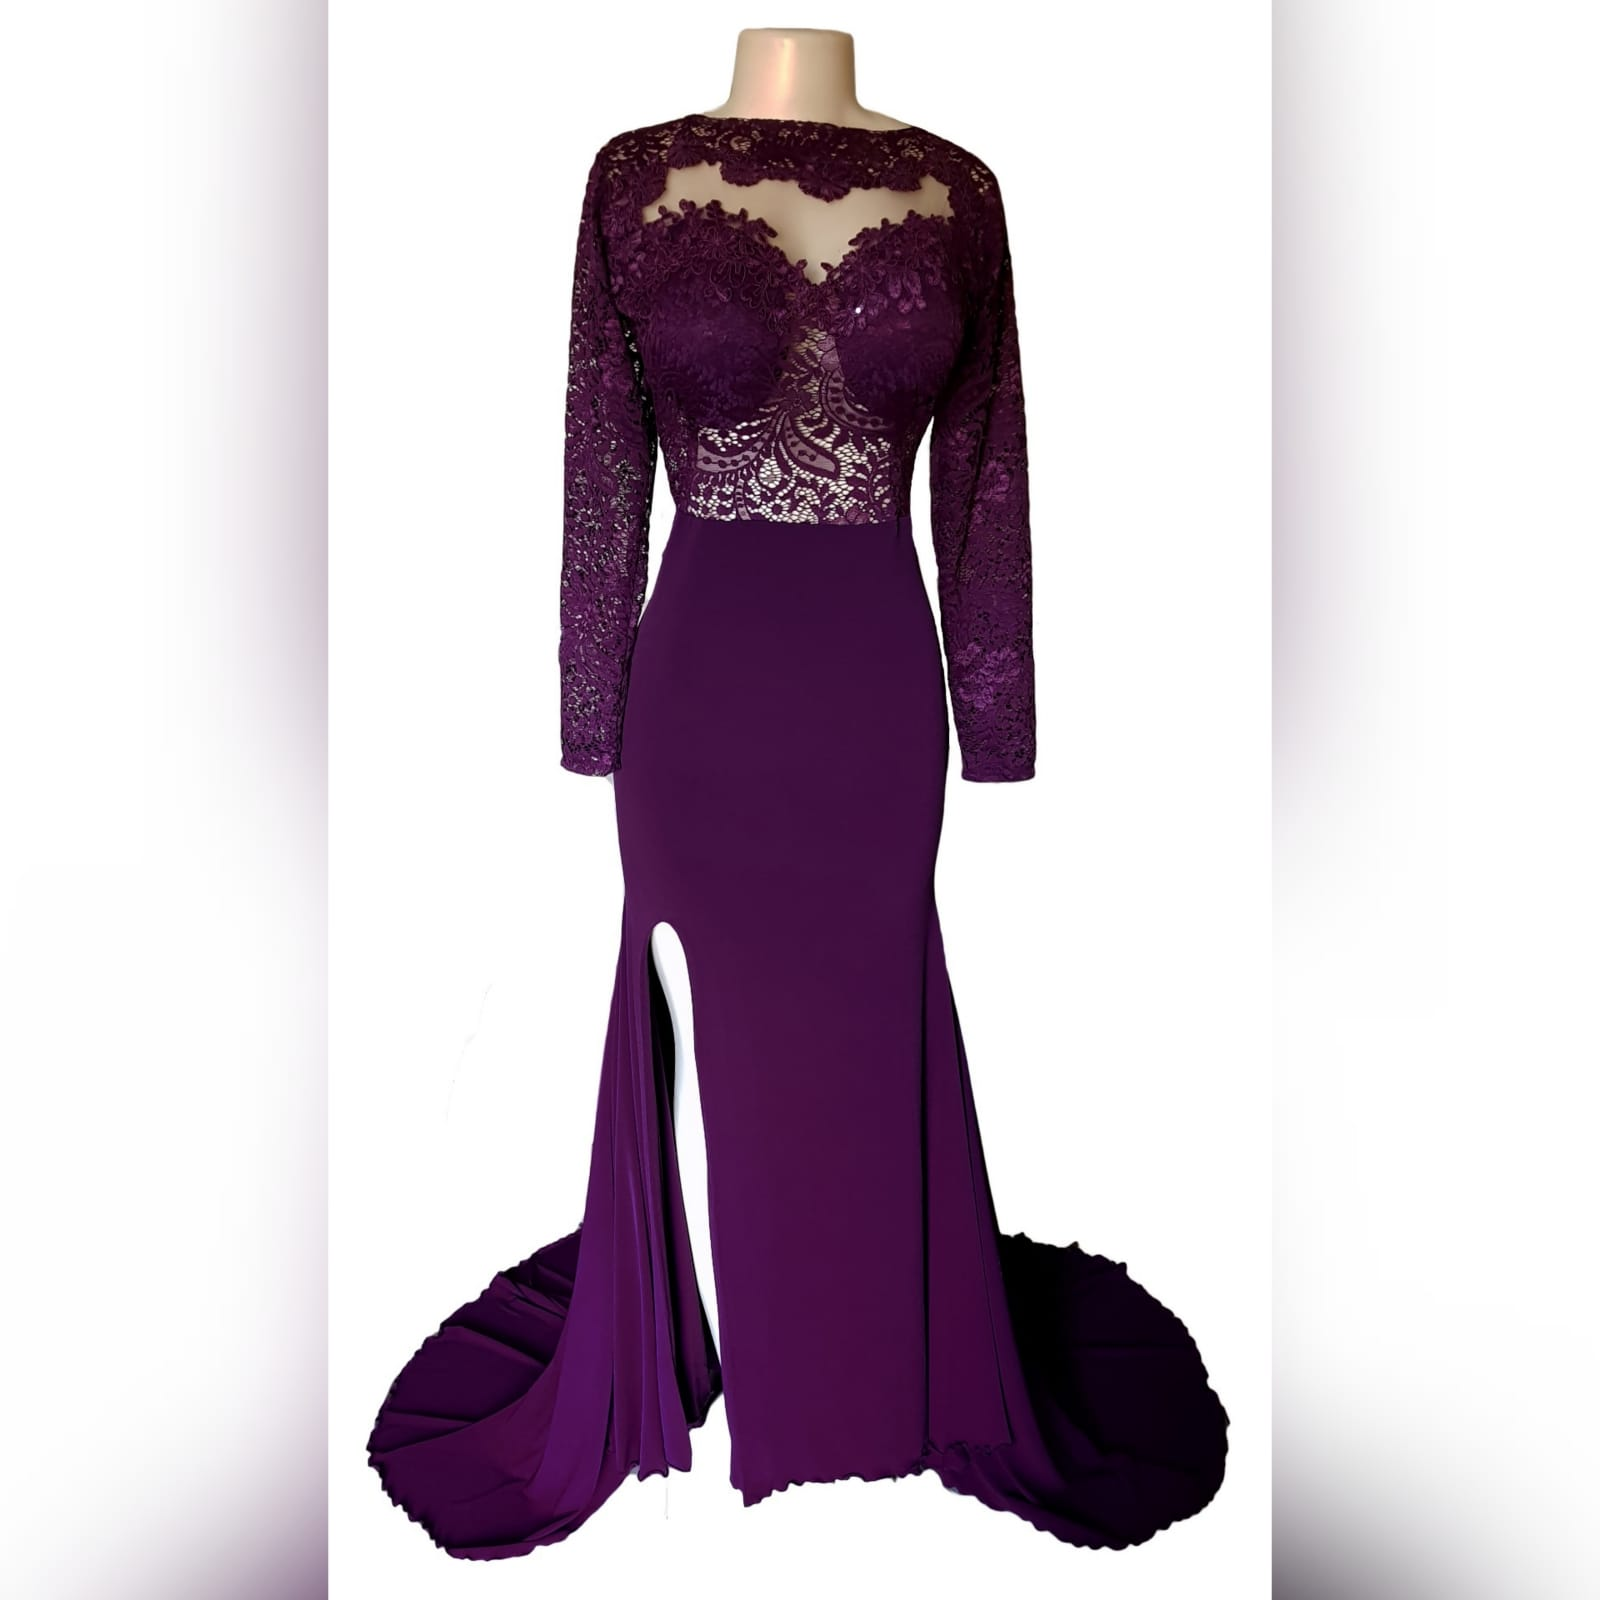 Plum lace bodice soft mermaid matric dance dress 3 plum lace bodice, soft mermaid matric dance dress with a low open rounded open back and hip lace design. With long lace sleeves and a long train.